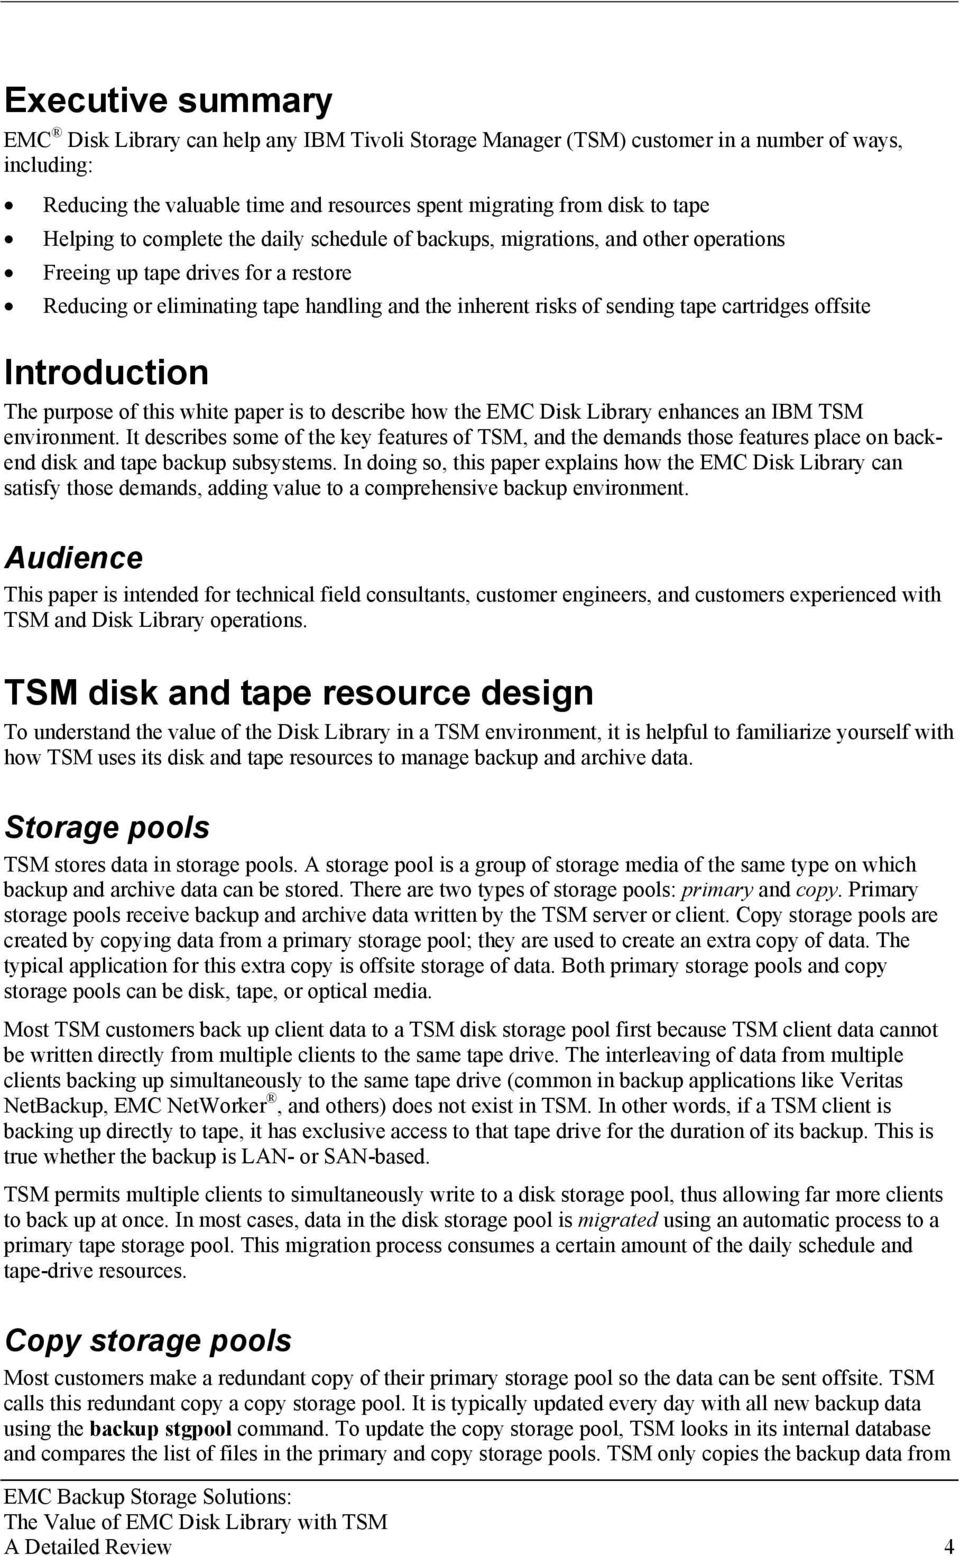 cartridges offsite Introduction The purpose of this white paper is to describe how the EMC Disk Library enhances an IBM TSM environment.